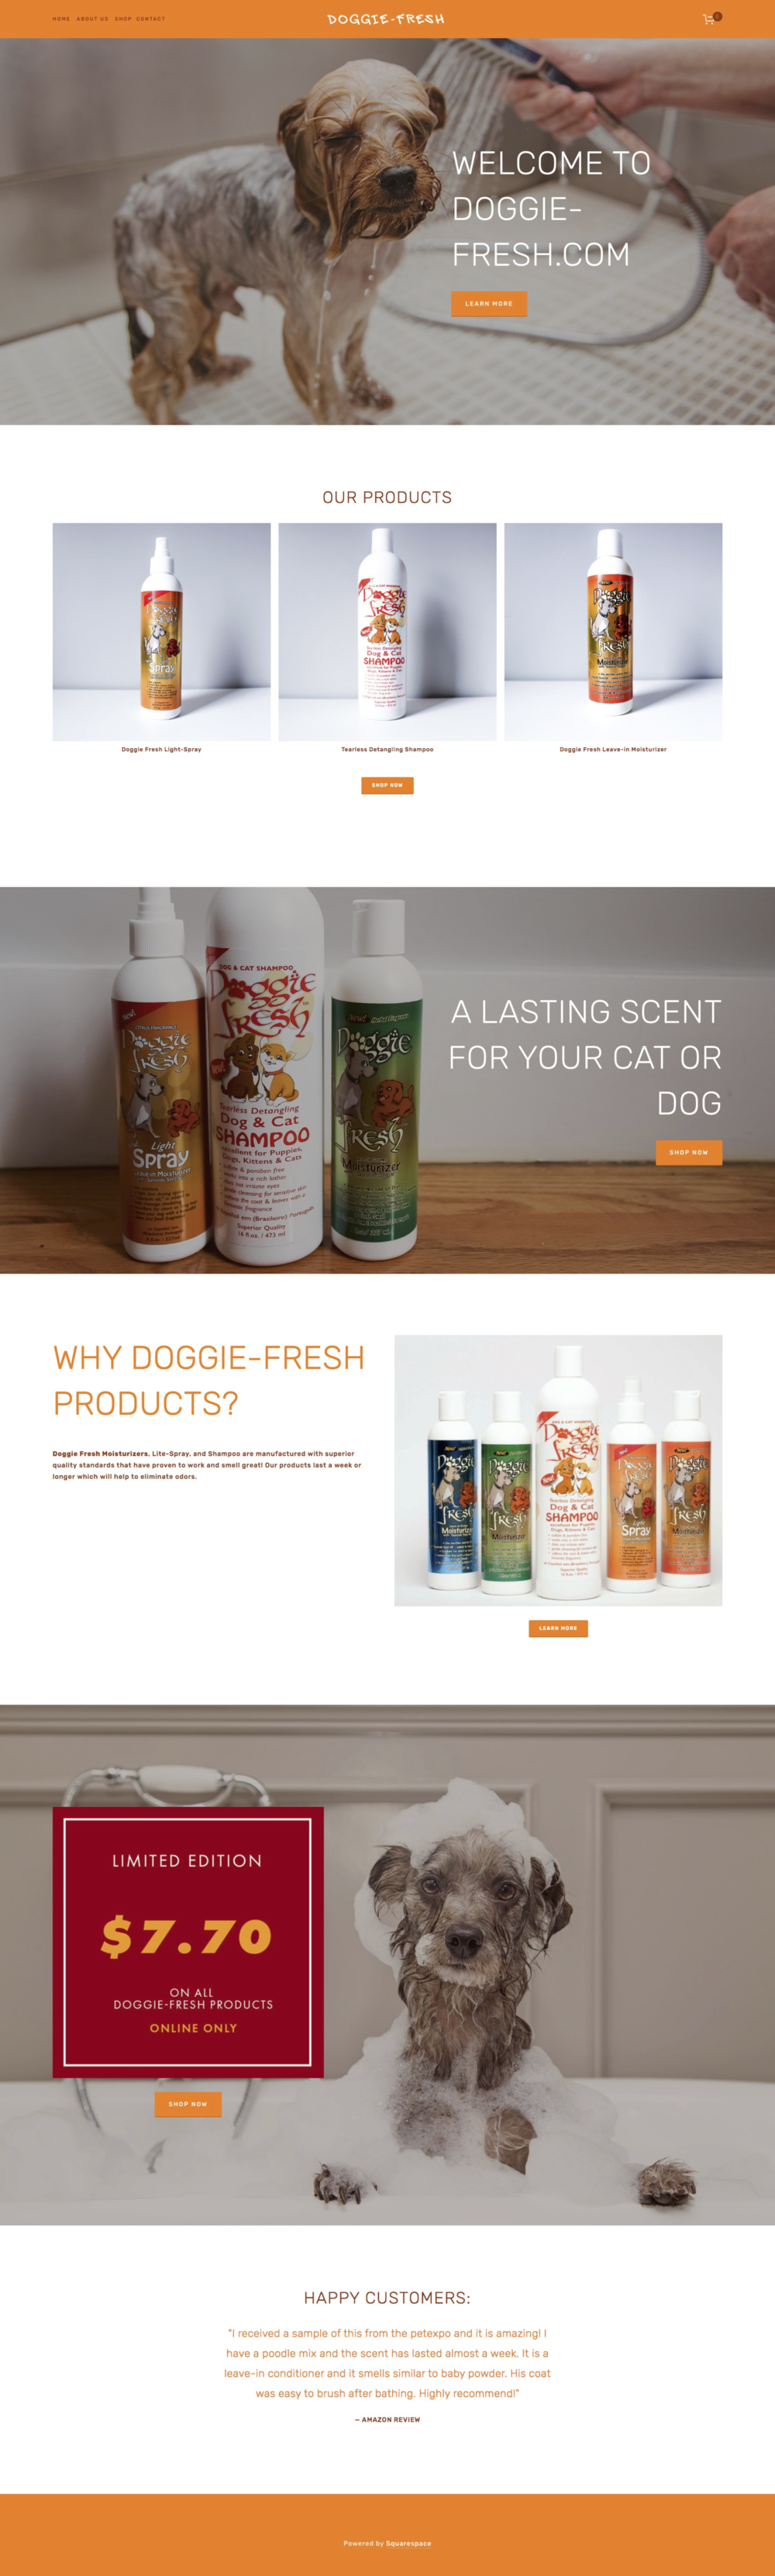 Doggie Fresh / Web Design